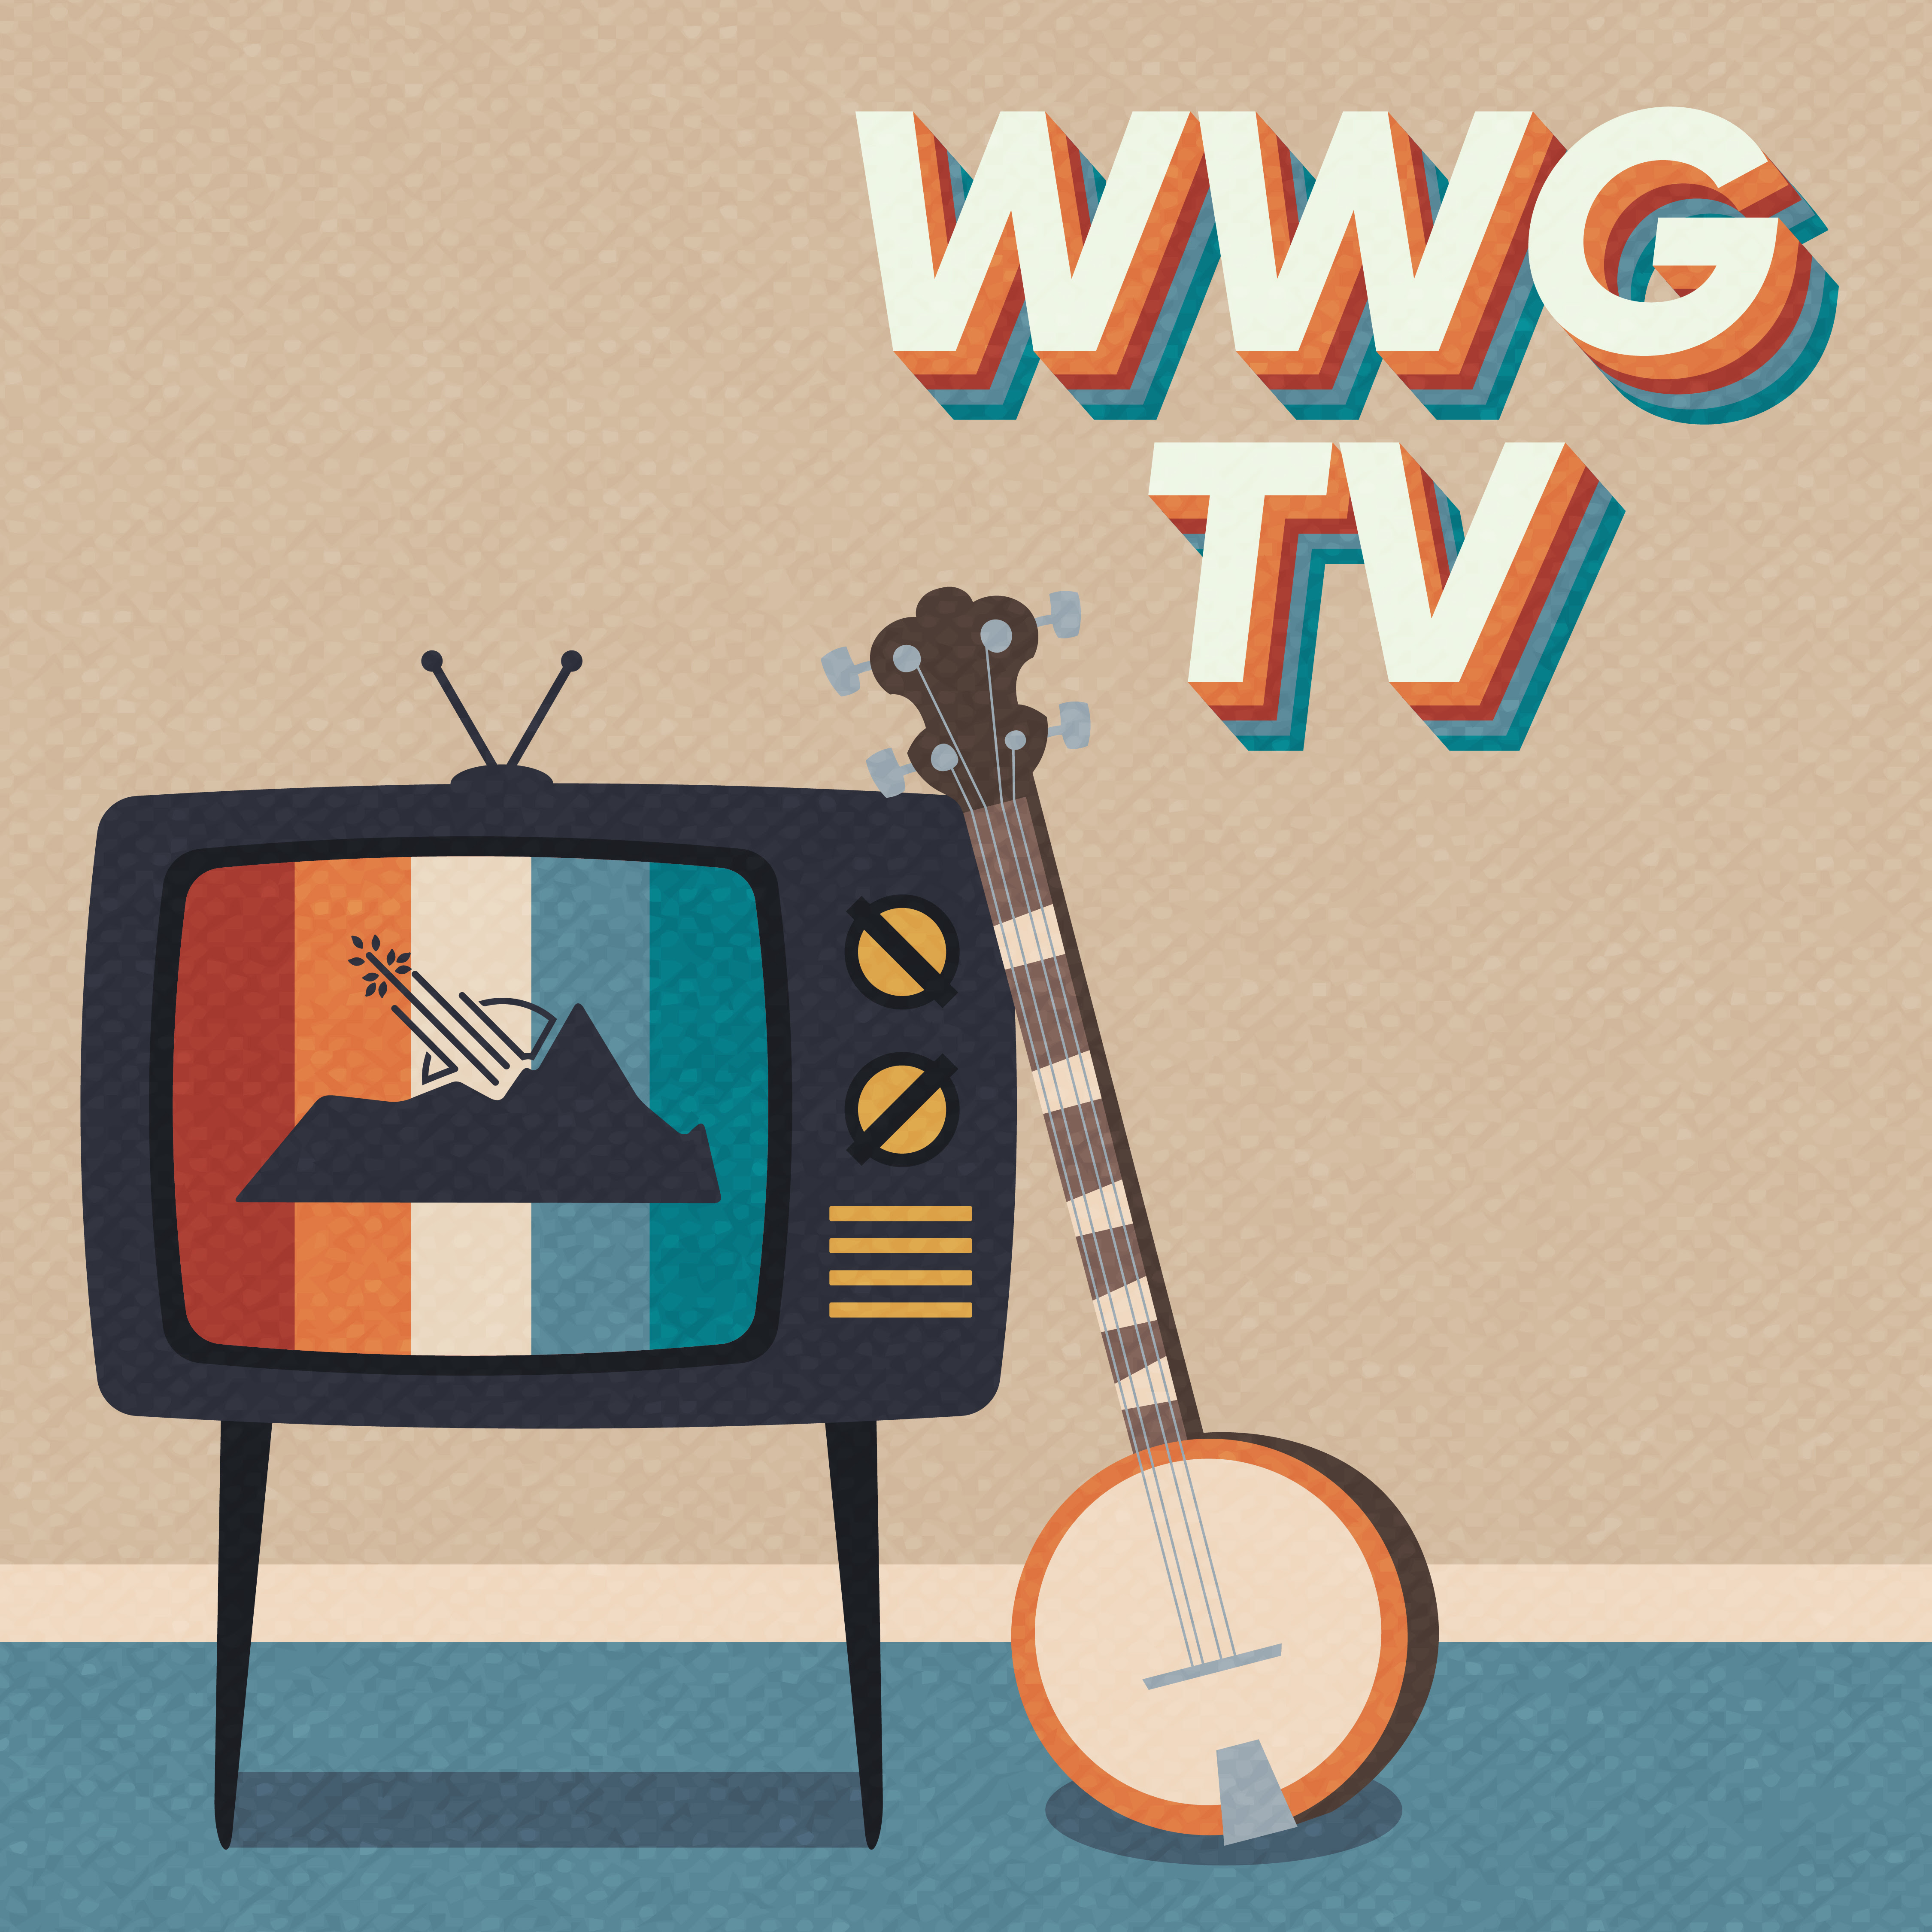 WinterWonderGrass Announces WWG TV